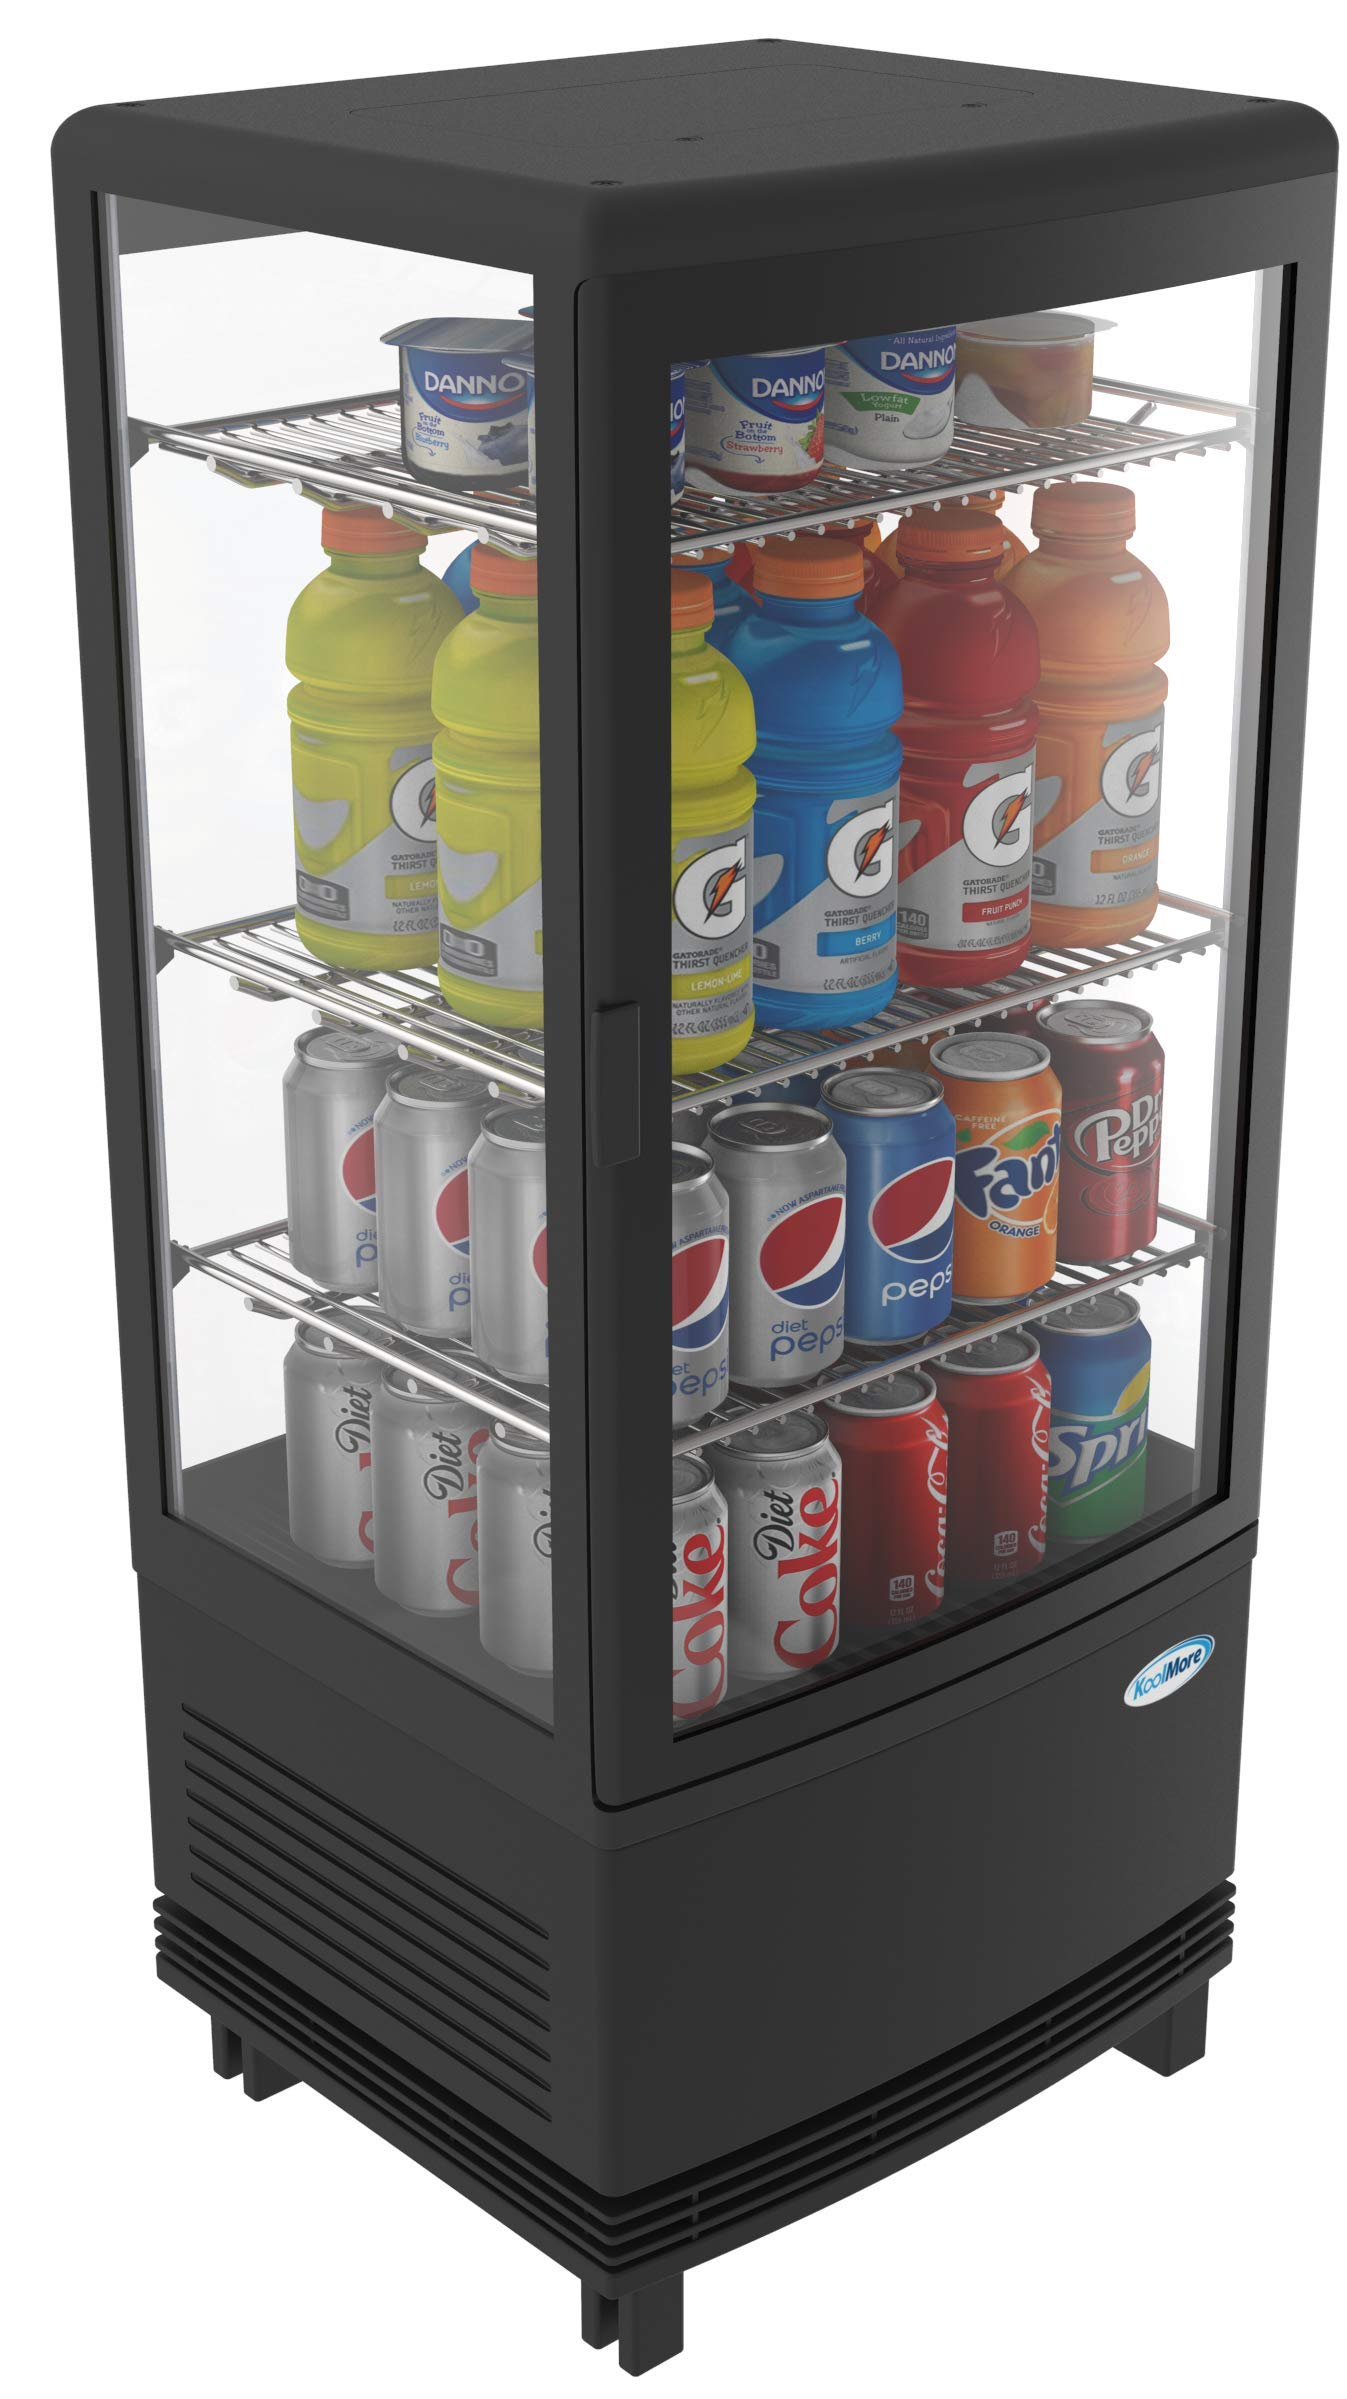 KoolMore Countertop Refrigerator Display Case Commercial Beverage Cooler with LED Lighting - 3 cu. ft Capacity by KoolMore (Image #9)